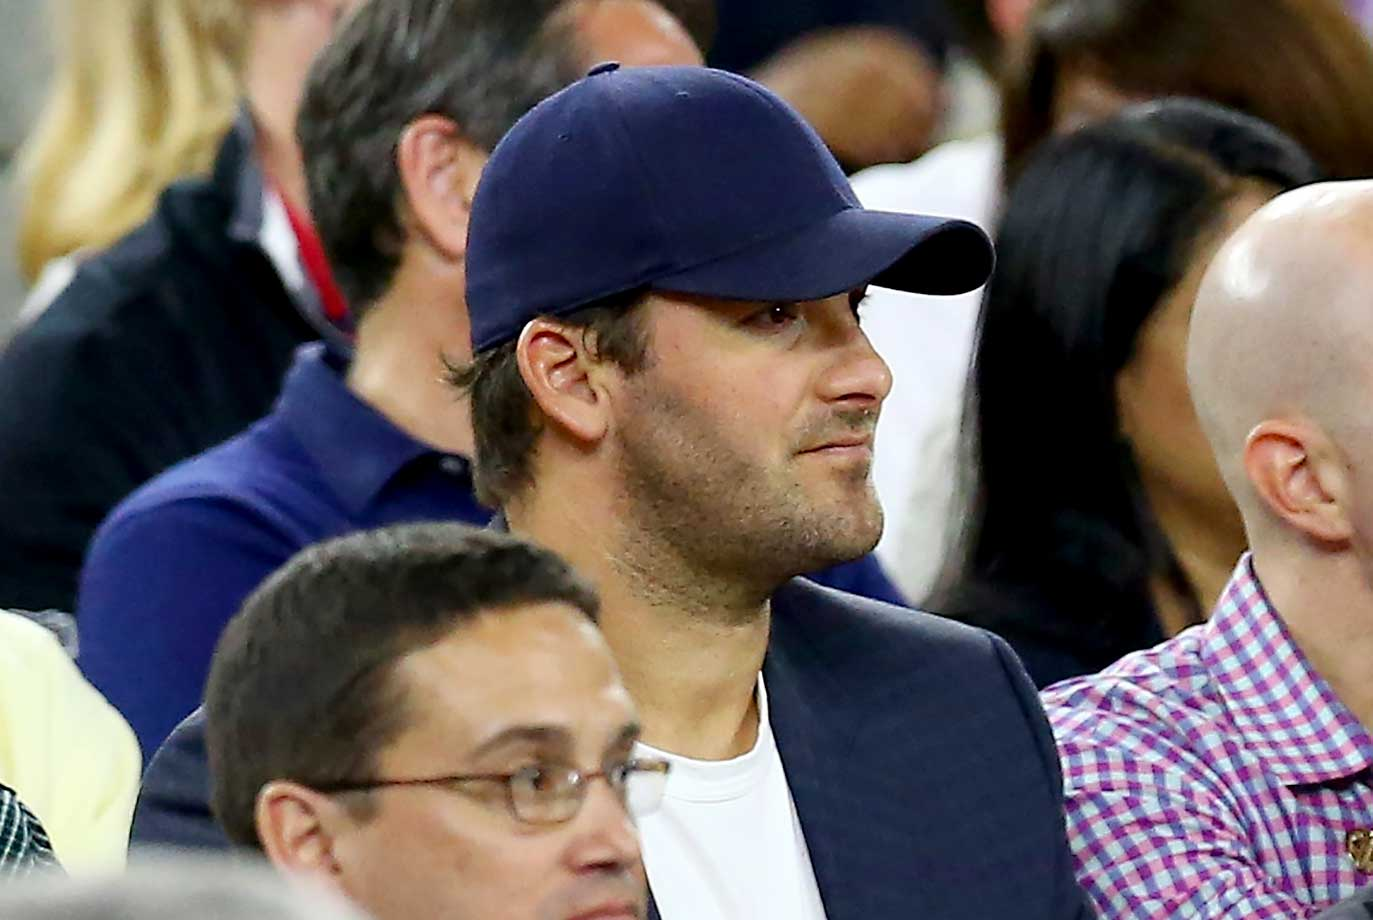 Dallas quarterback Tony Romo looks on during the NCAA Men's Final Four semifinal in Houston between Villanova and Oklahoma.